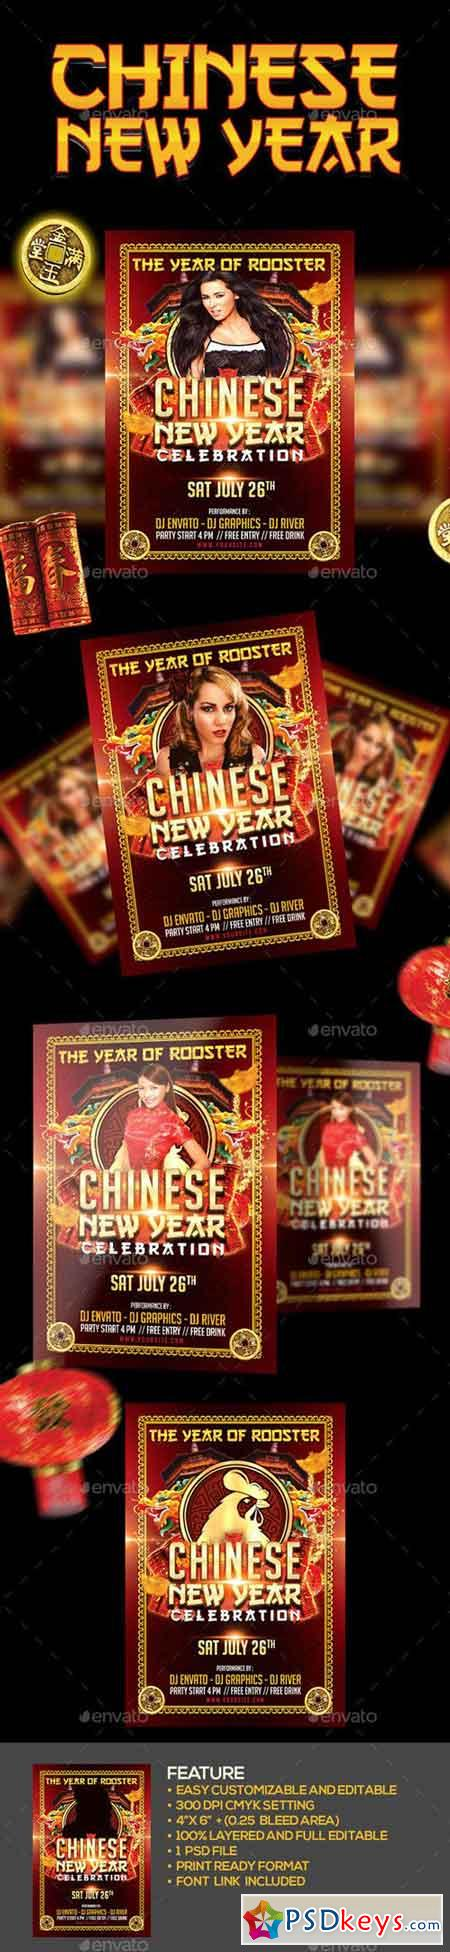 Chinese New Year Celebration - 19204779